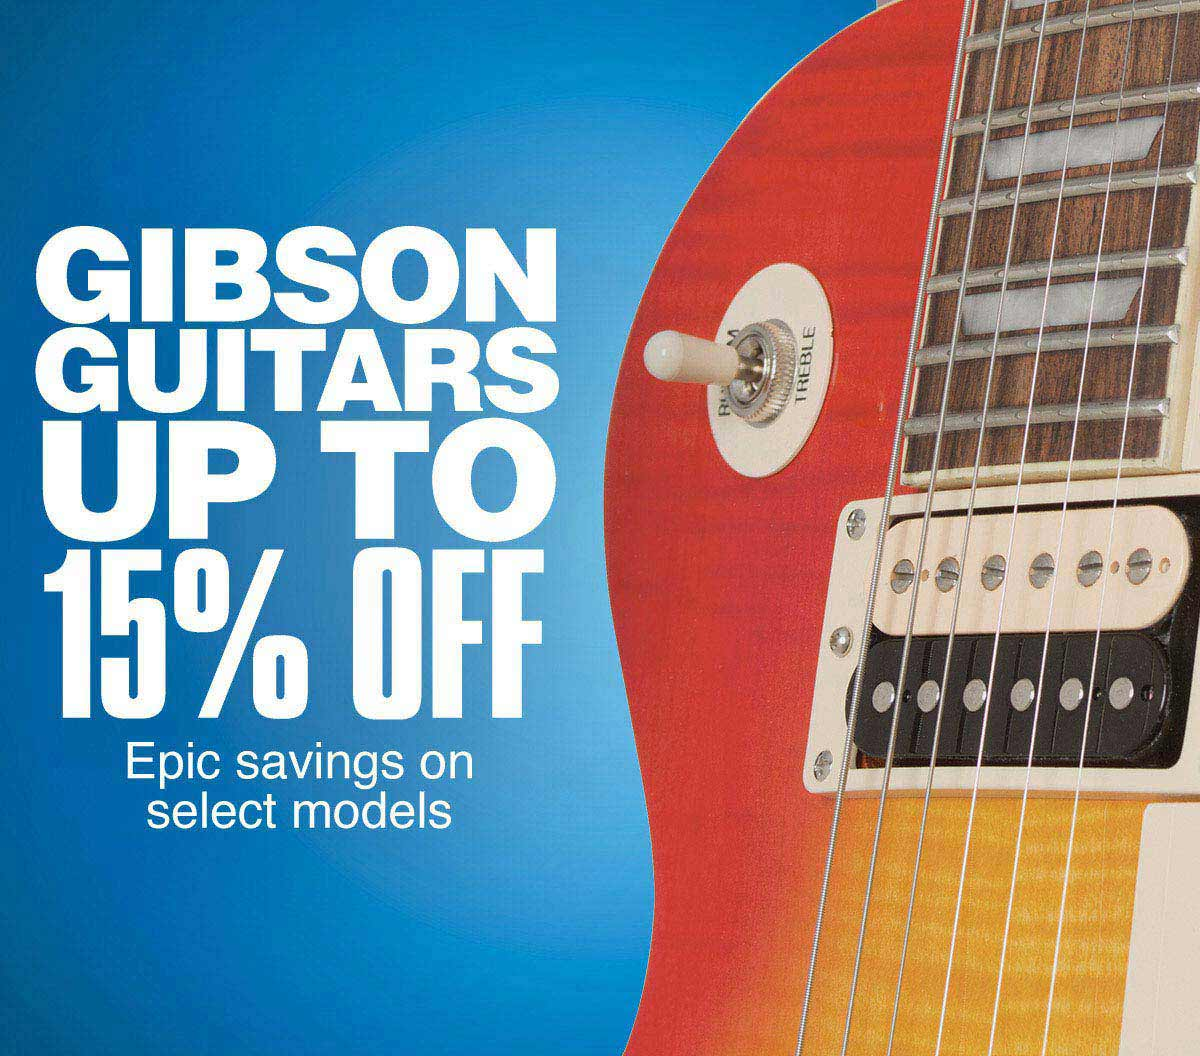 Gibson Guitars Up To 15 Percent Off. Epic savings on select models.